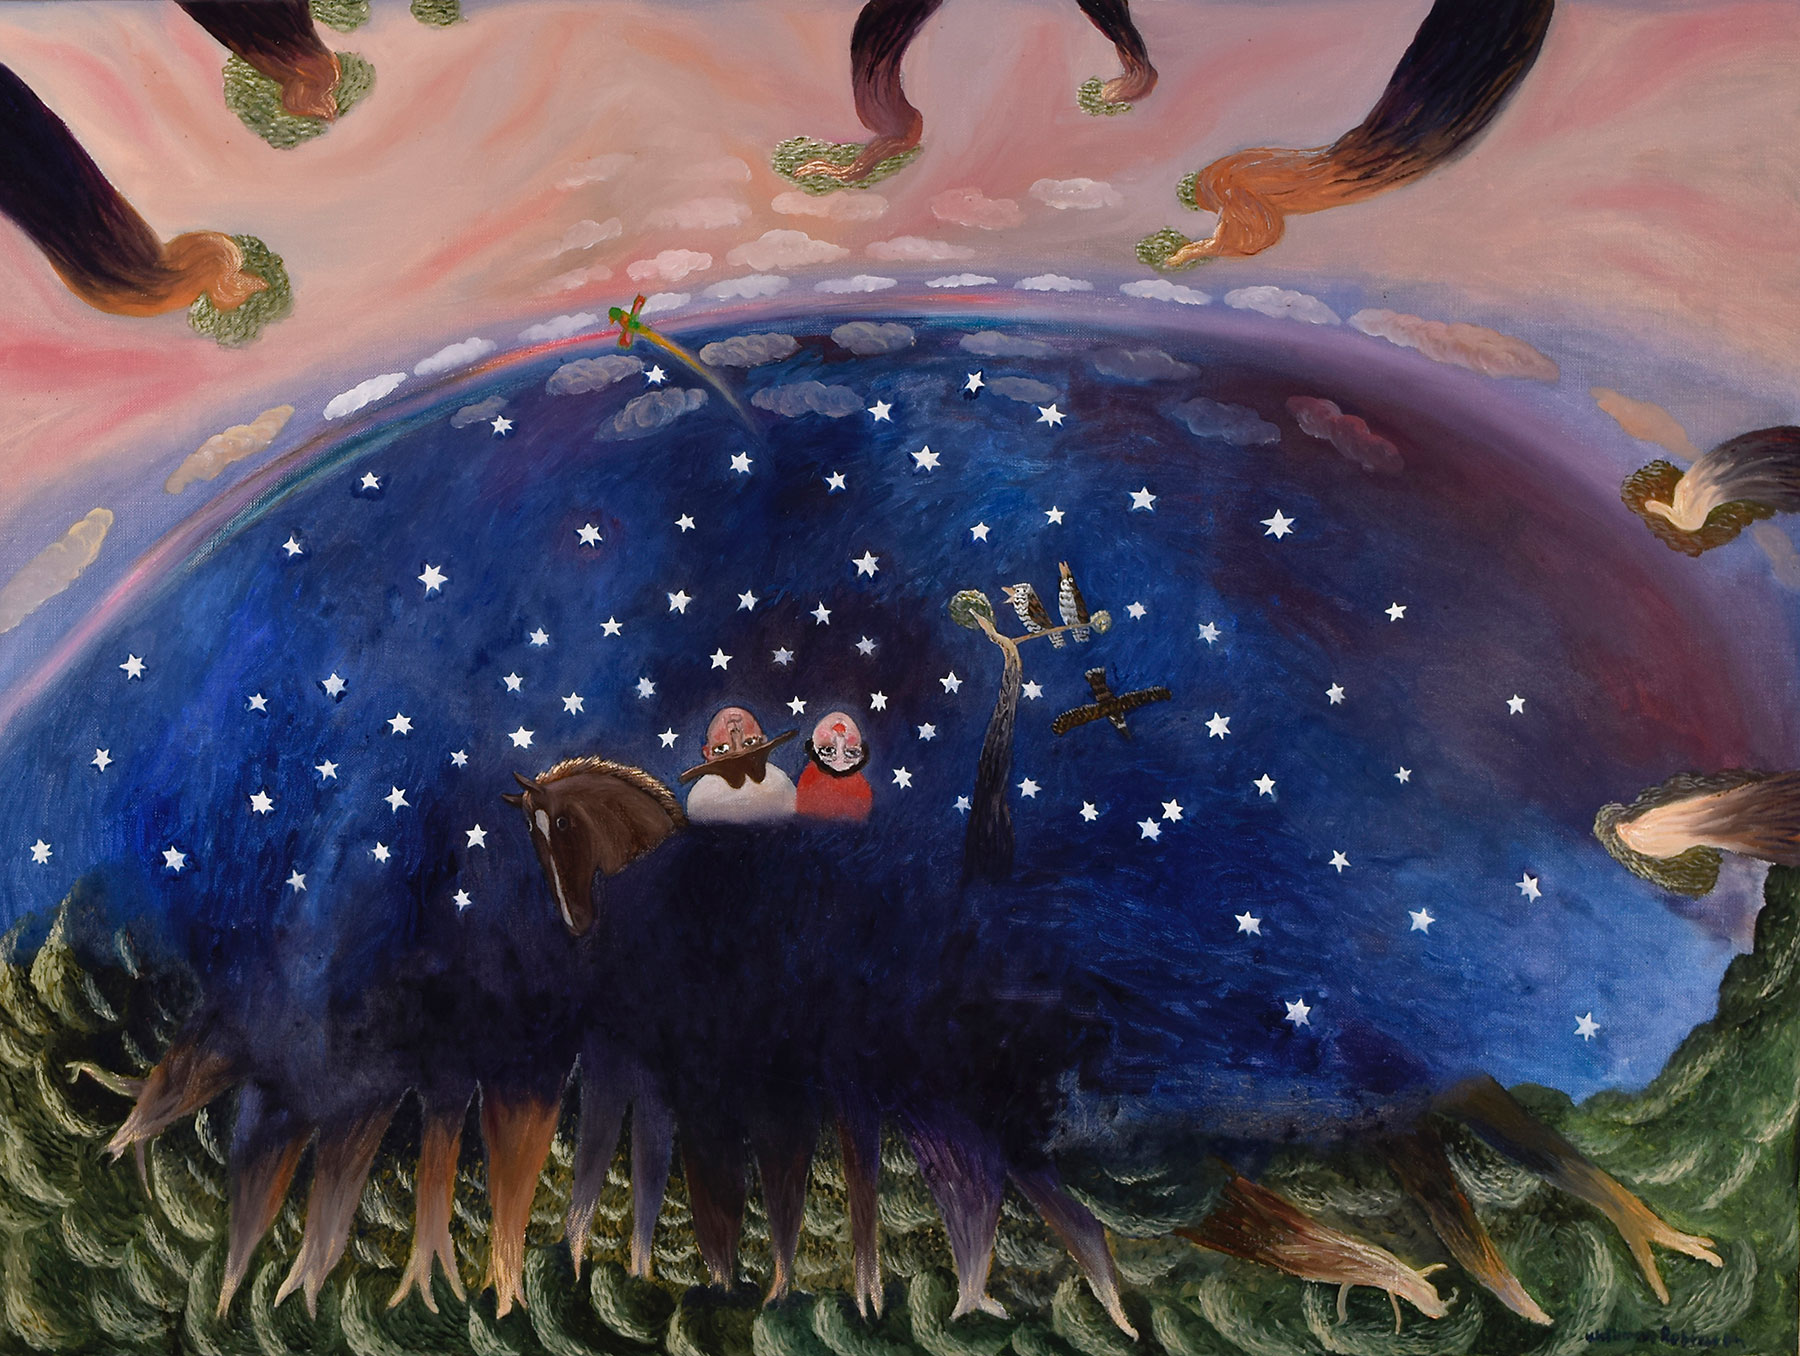 William ROBINSON, 'Out of the dawn' 1987, oil on linen. Collection of Martin and Jan Jorgensen, Brisbane.